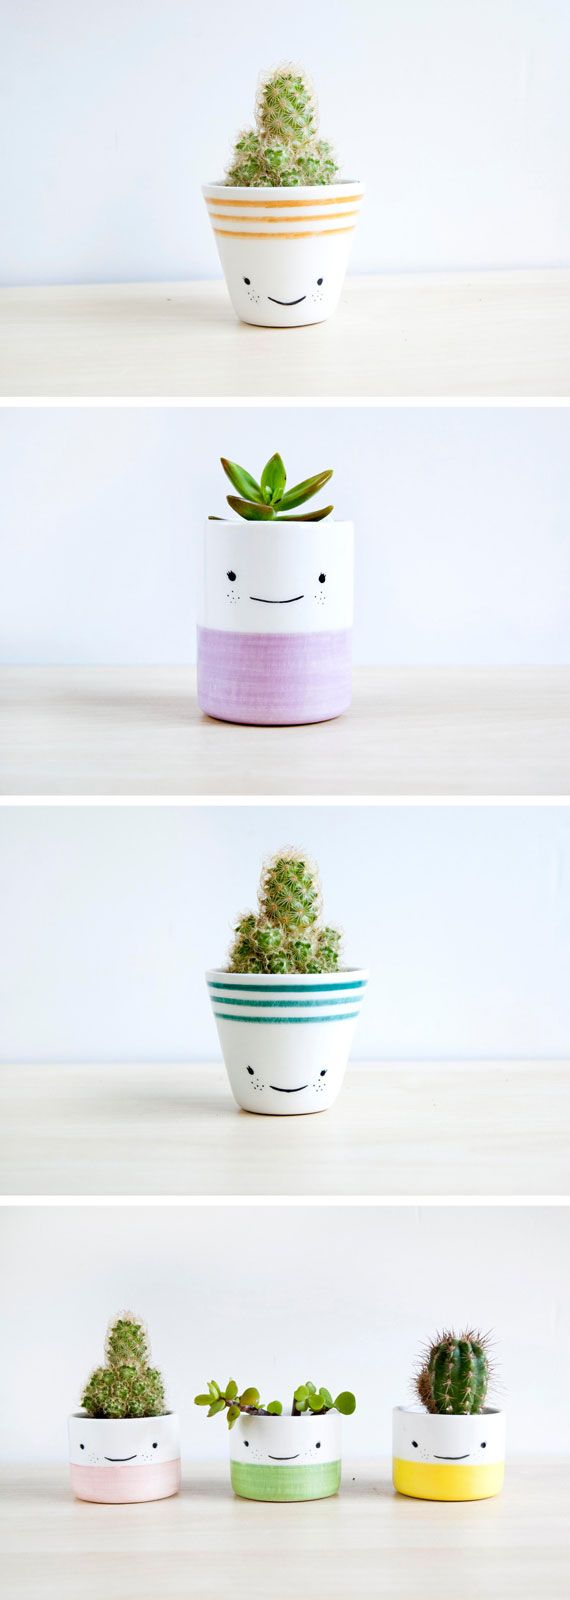 手机壳定制shox tl for women Happy planters are her thing Explore the shop of Spain based ceramicist Noe Marin